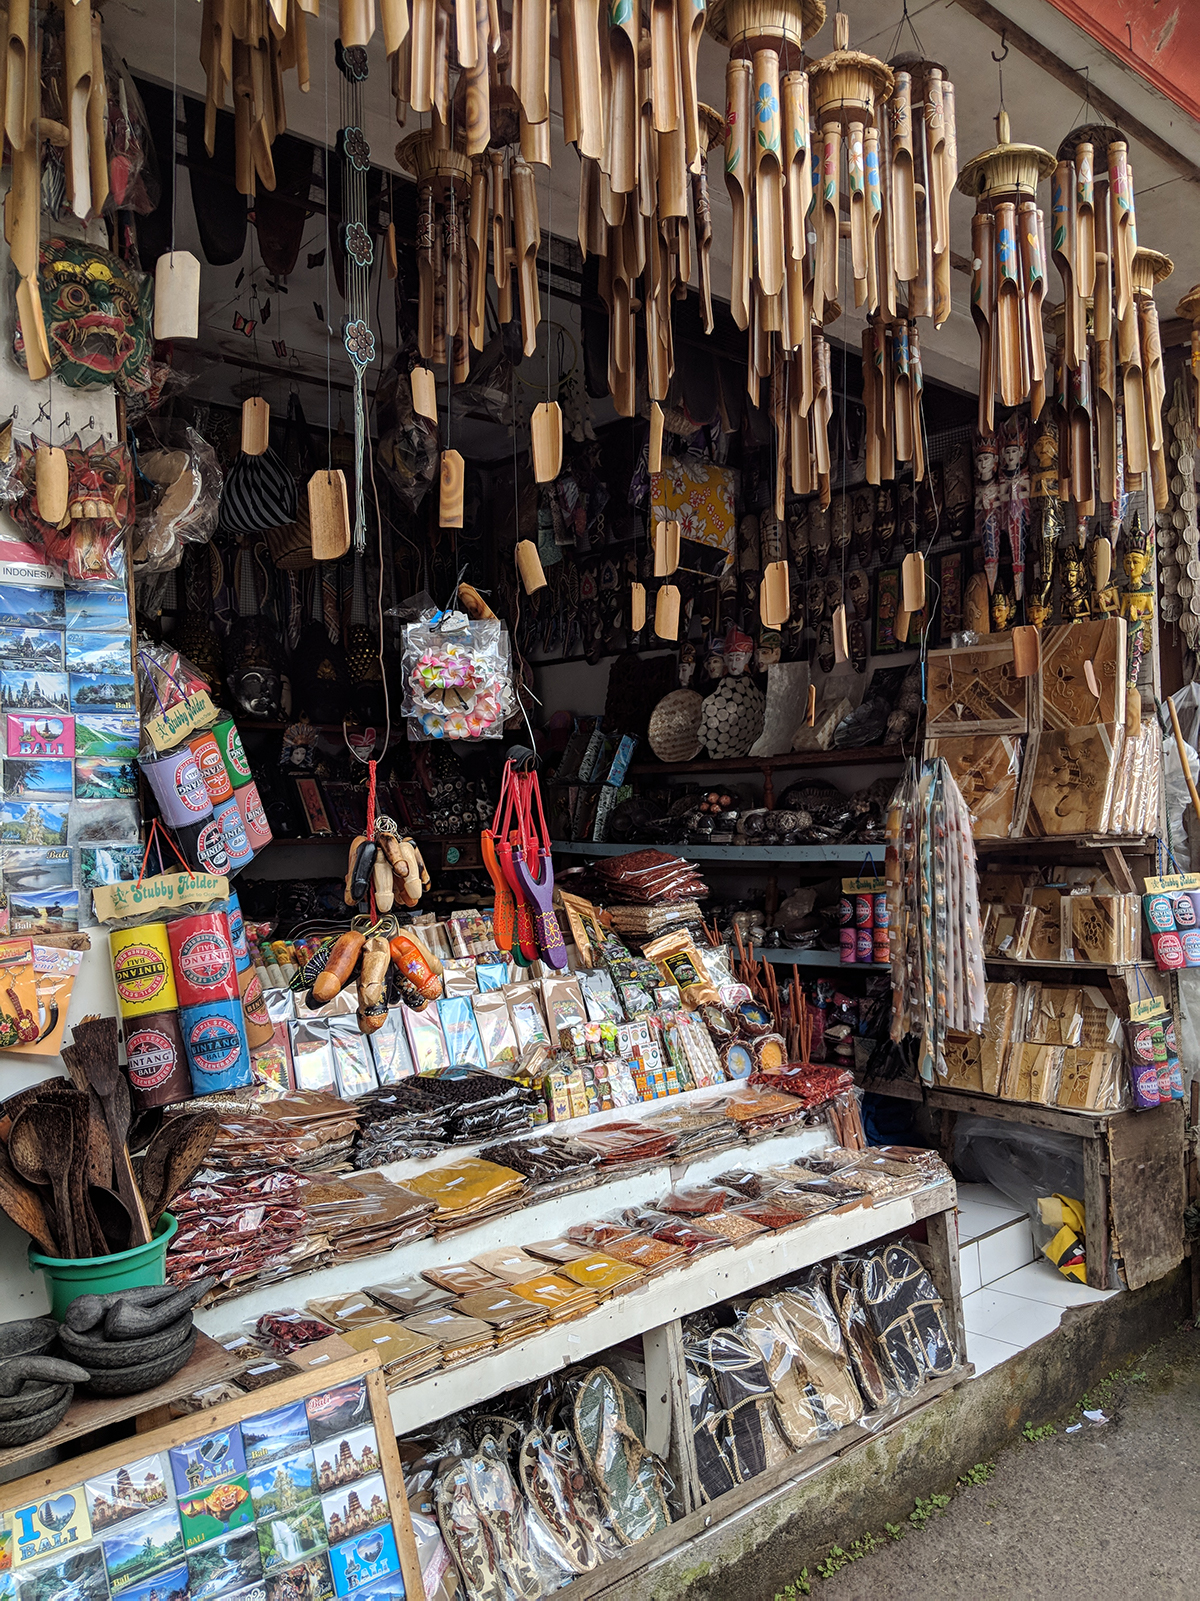 How To Buy Vanilla In Bali Where Is Jane Now